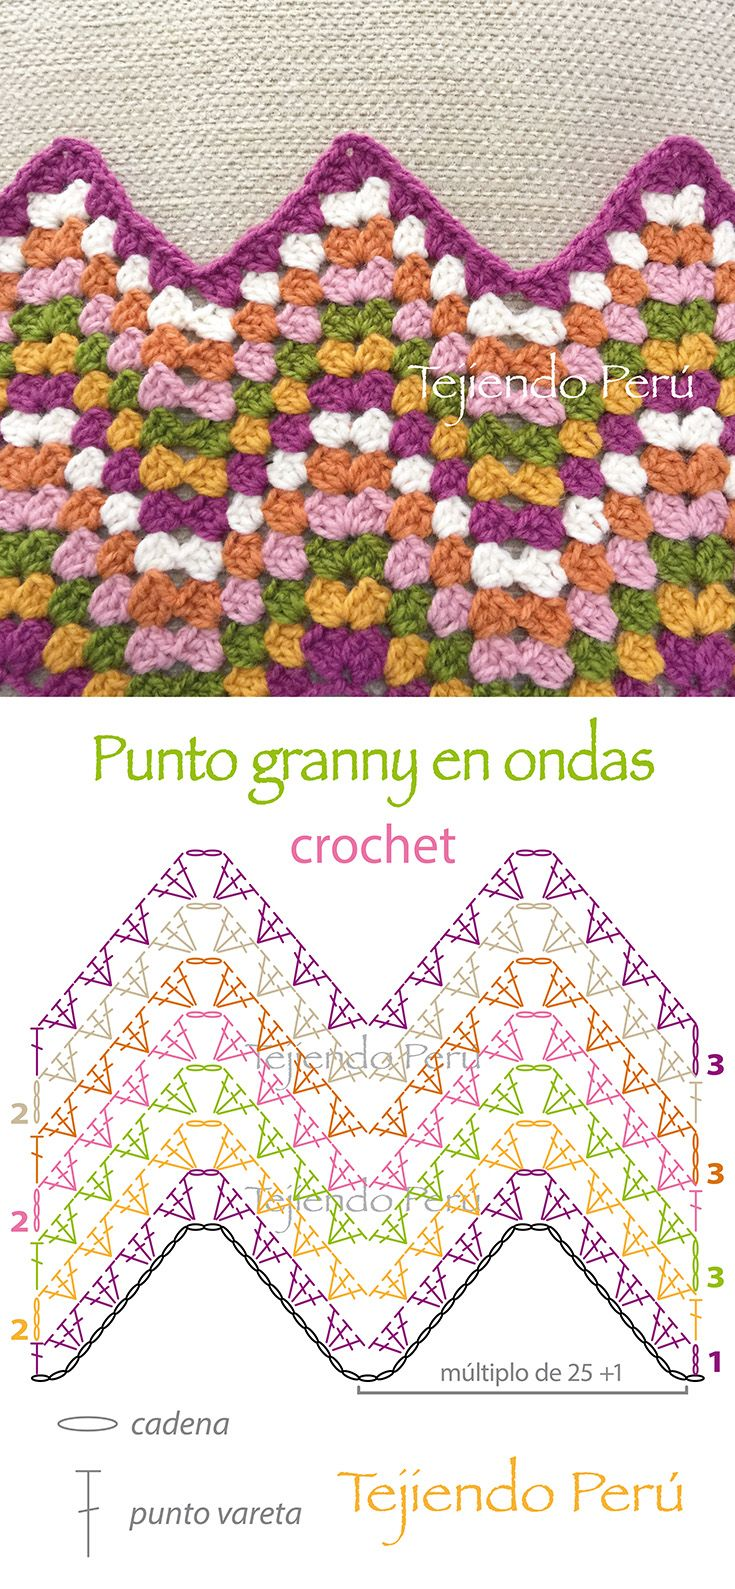 Find This Pin And More On Puntos Fantas�a En Crochet  Crochet Stitches  Crochet: Granny Ripple